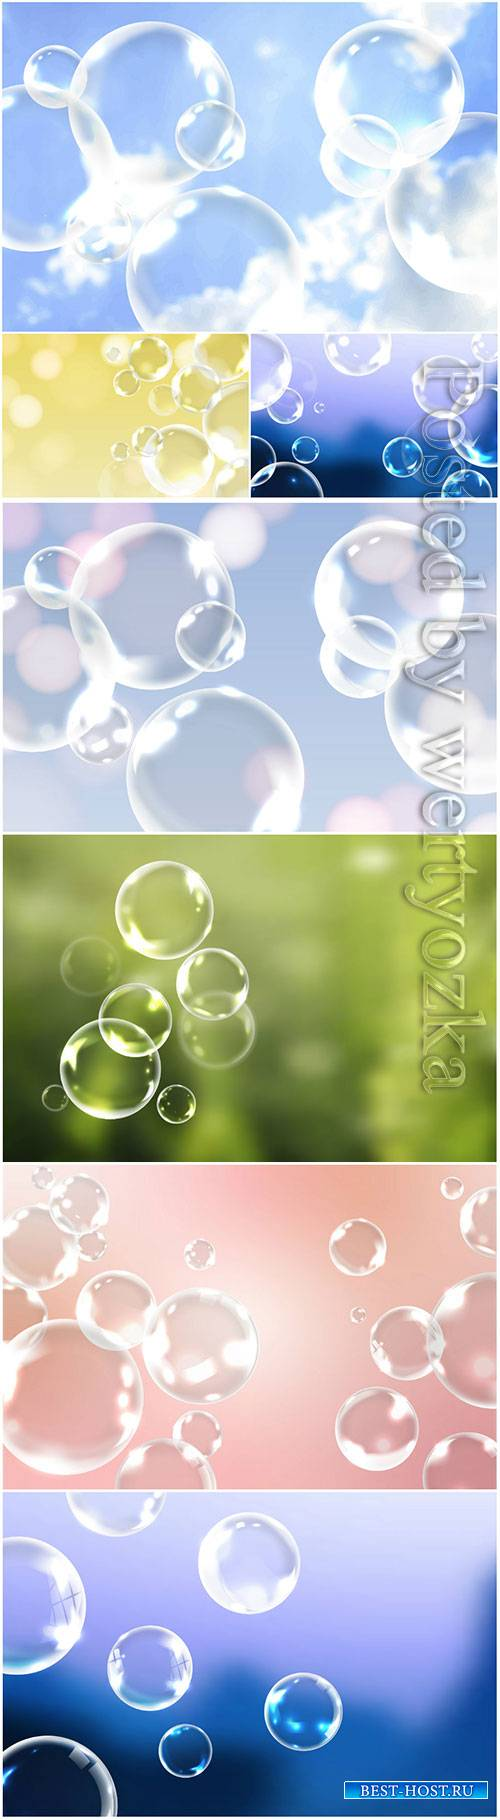 Soap bubbles vector background decoration